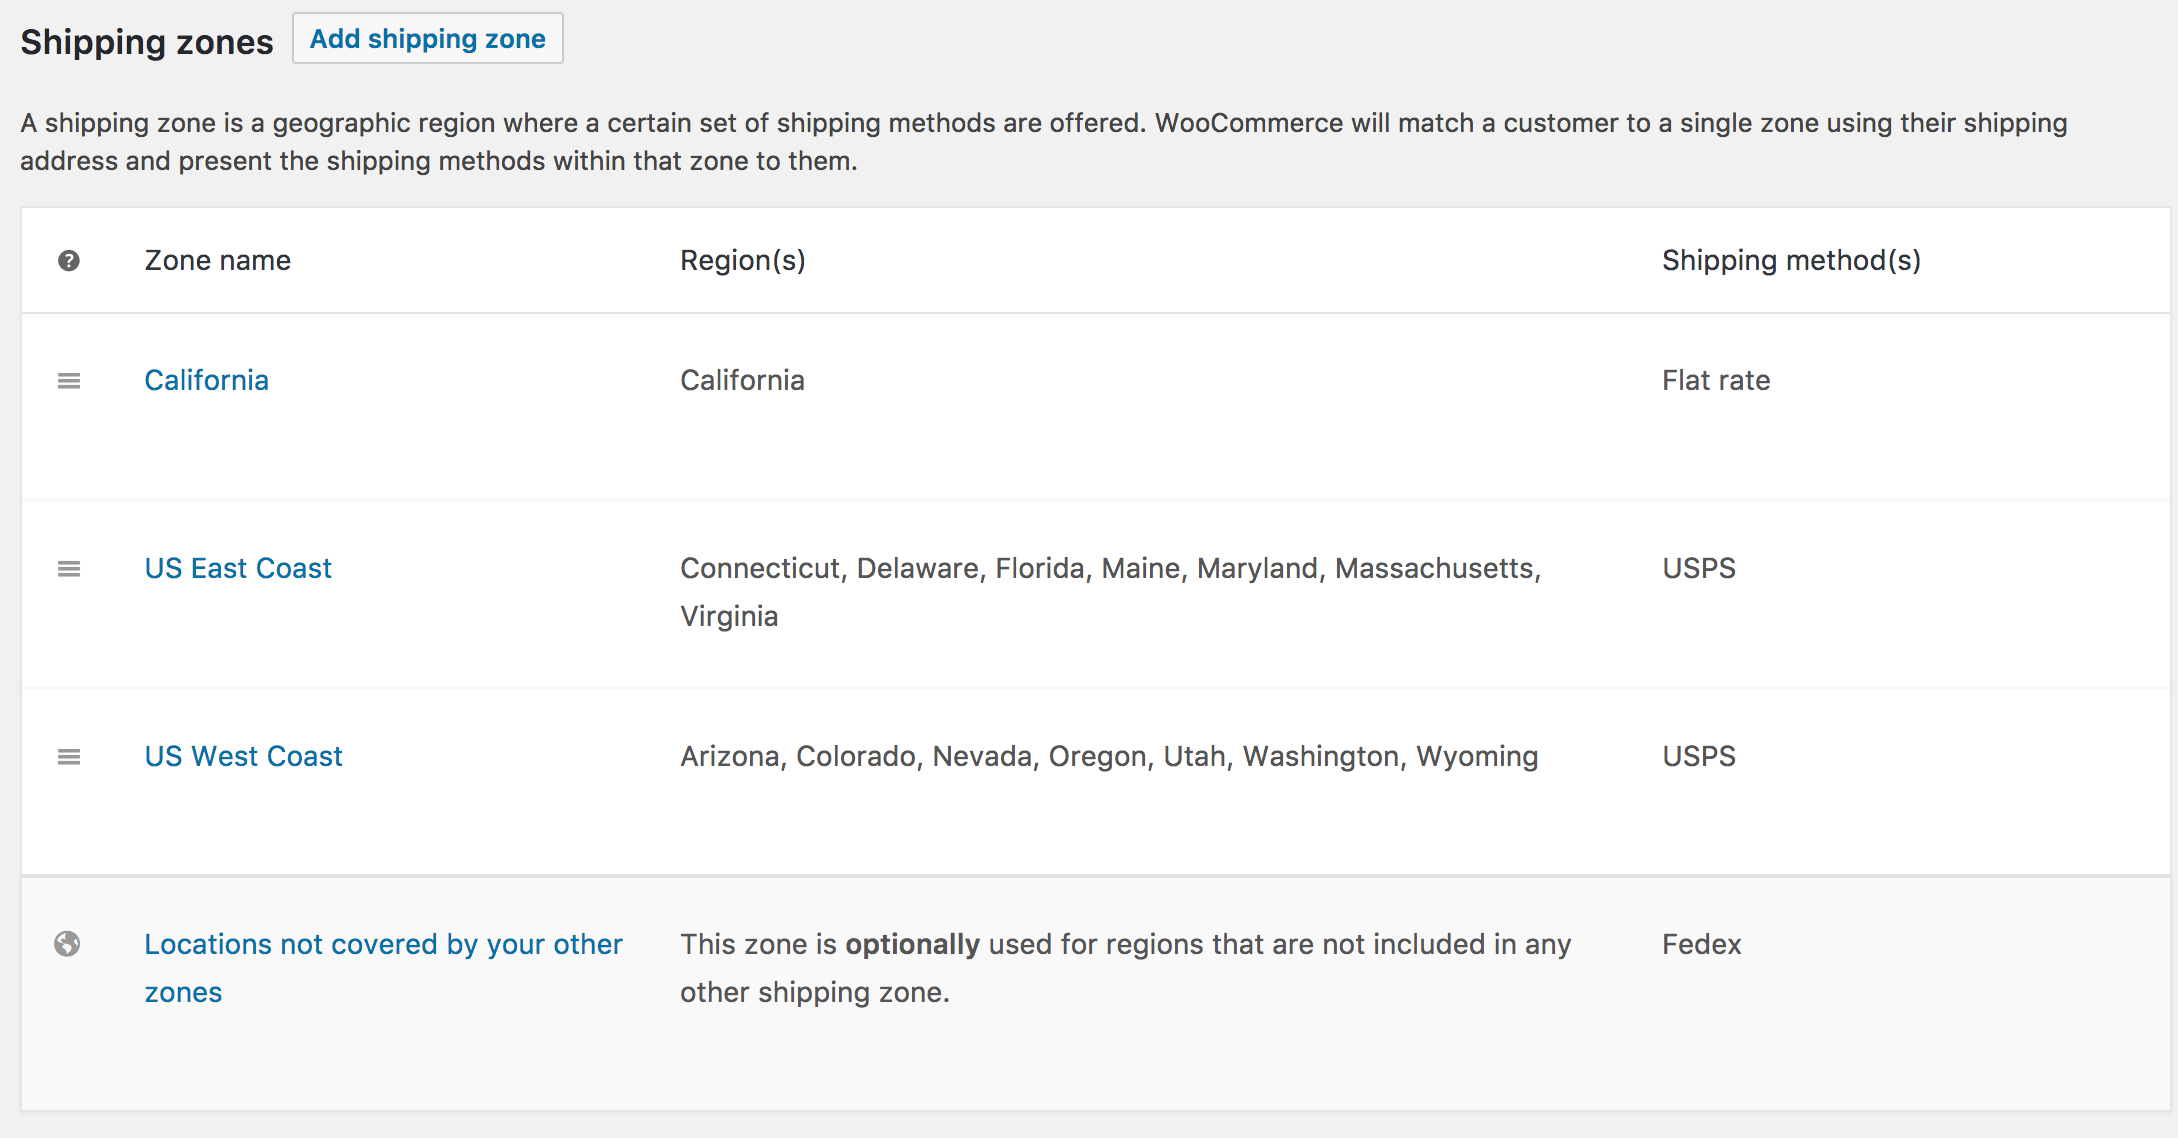 A screenshot of shipping zones in WooCommerce